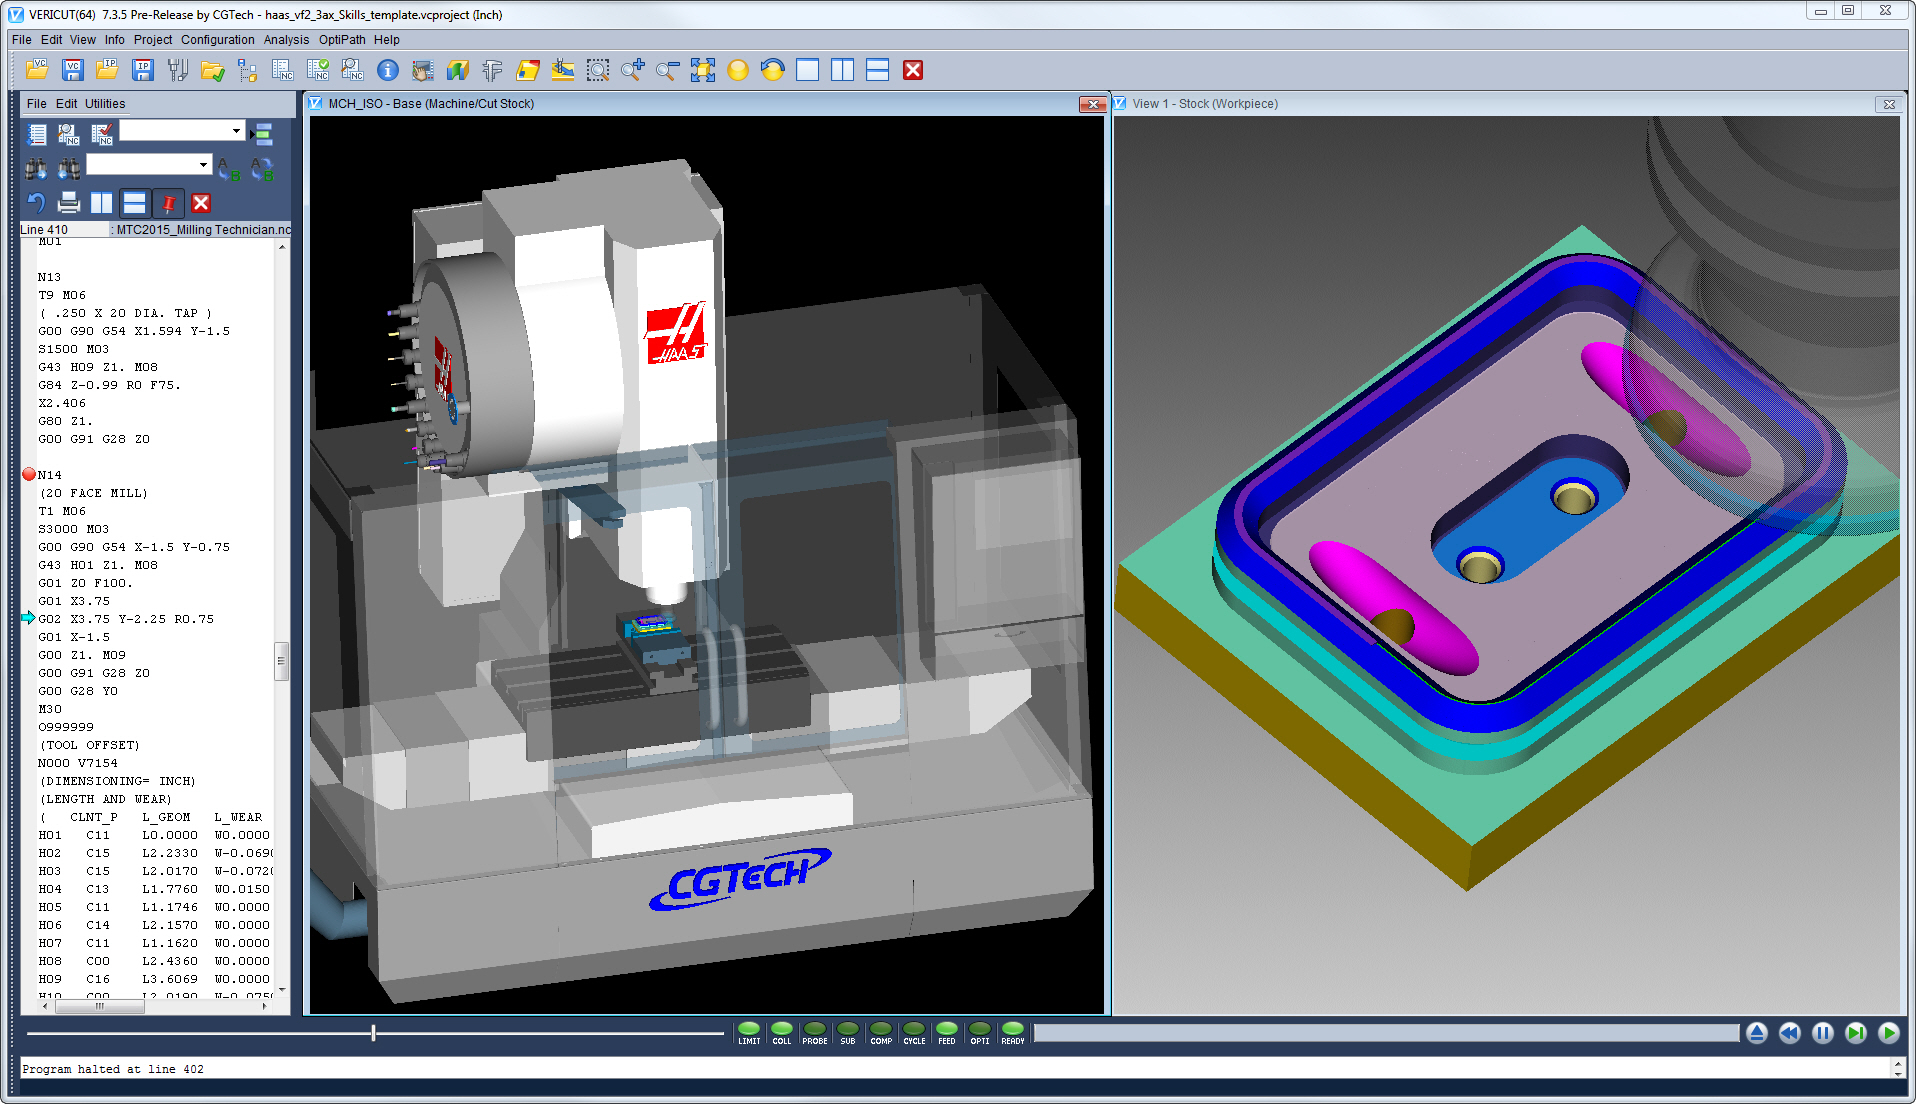 Cgtech Participates In Machining Contests